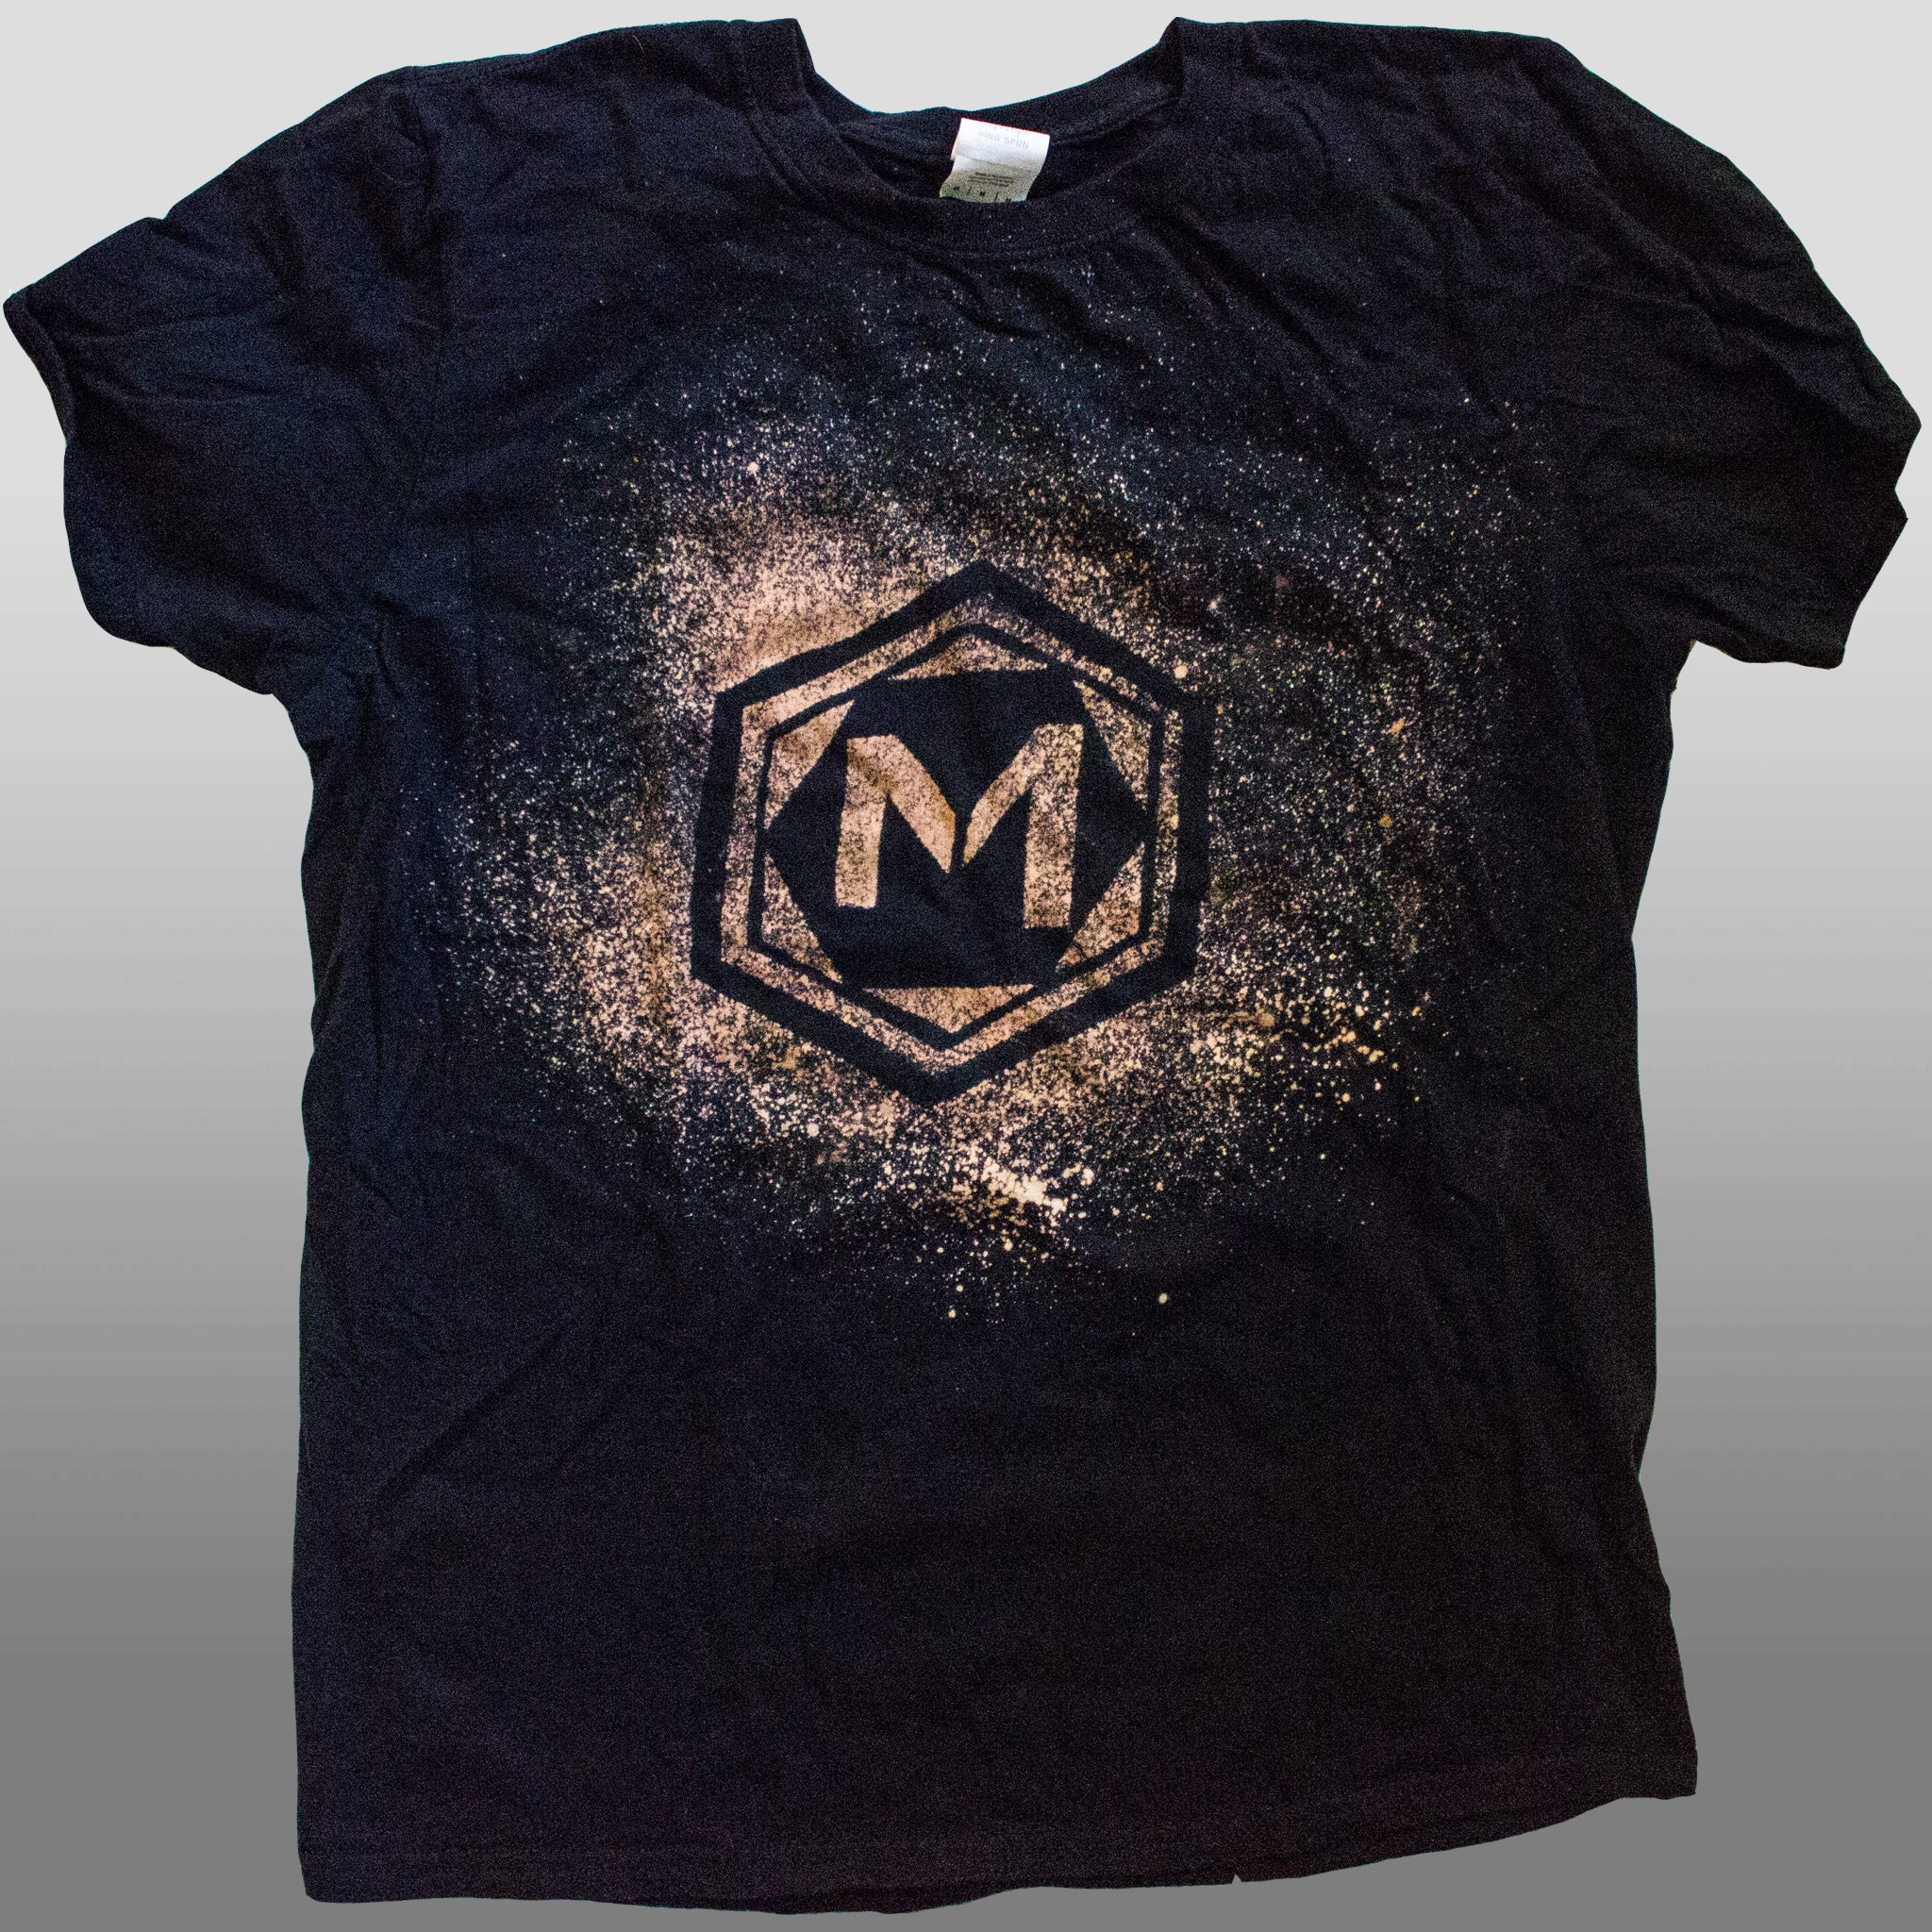 The Midnight Tryouts Standard T-Shirt - Black w/ Bleach Print